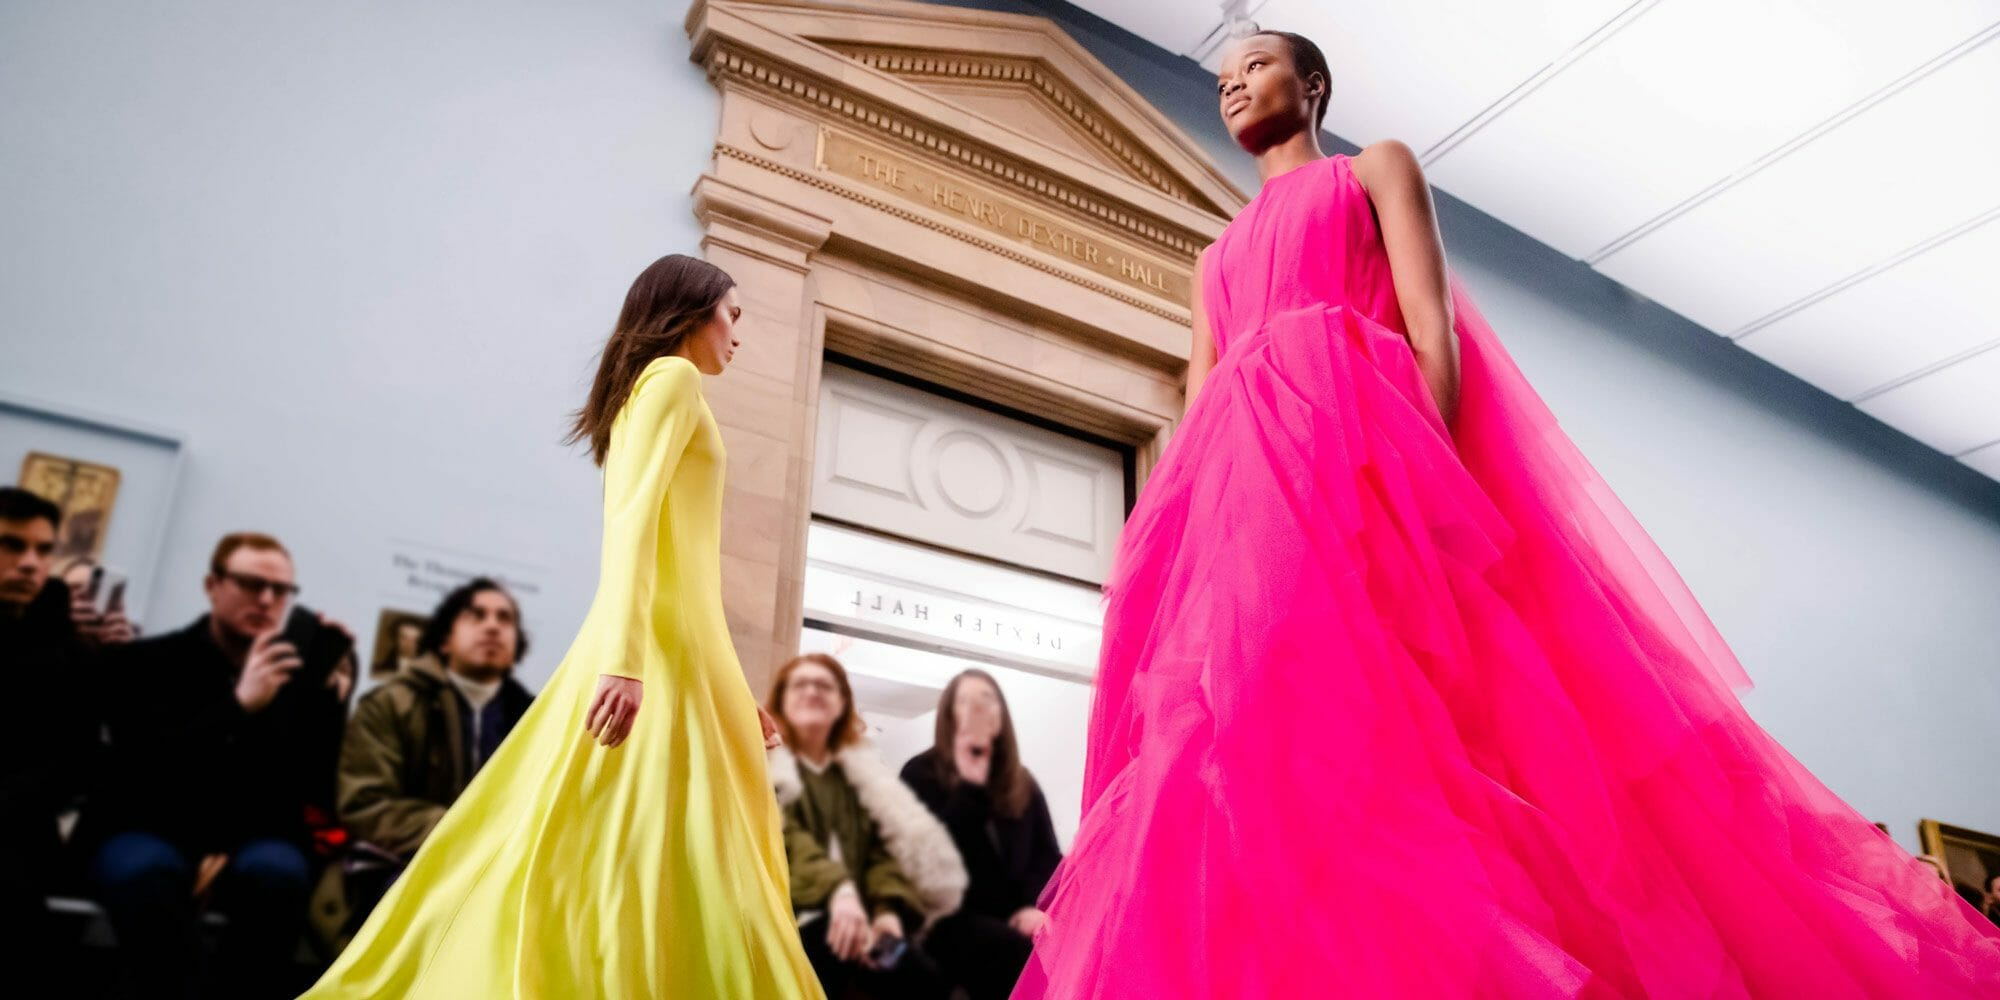 carolina herrera new york fall 2019 collection gown tulle pink dress yellow